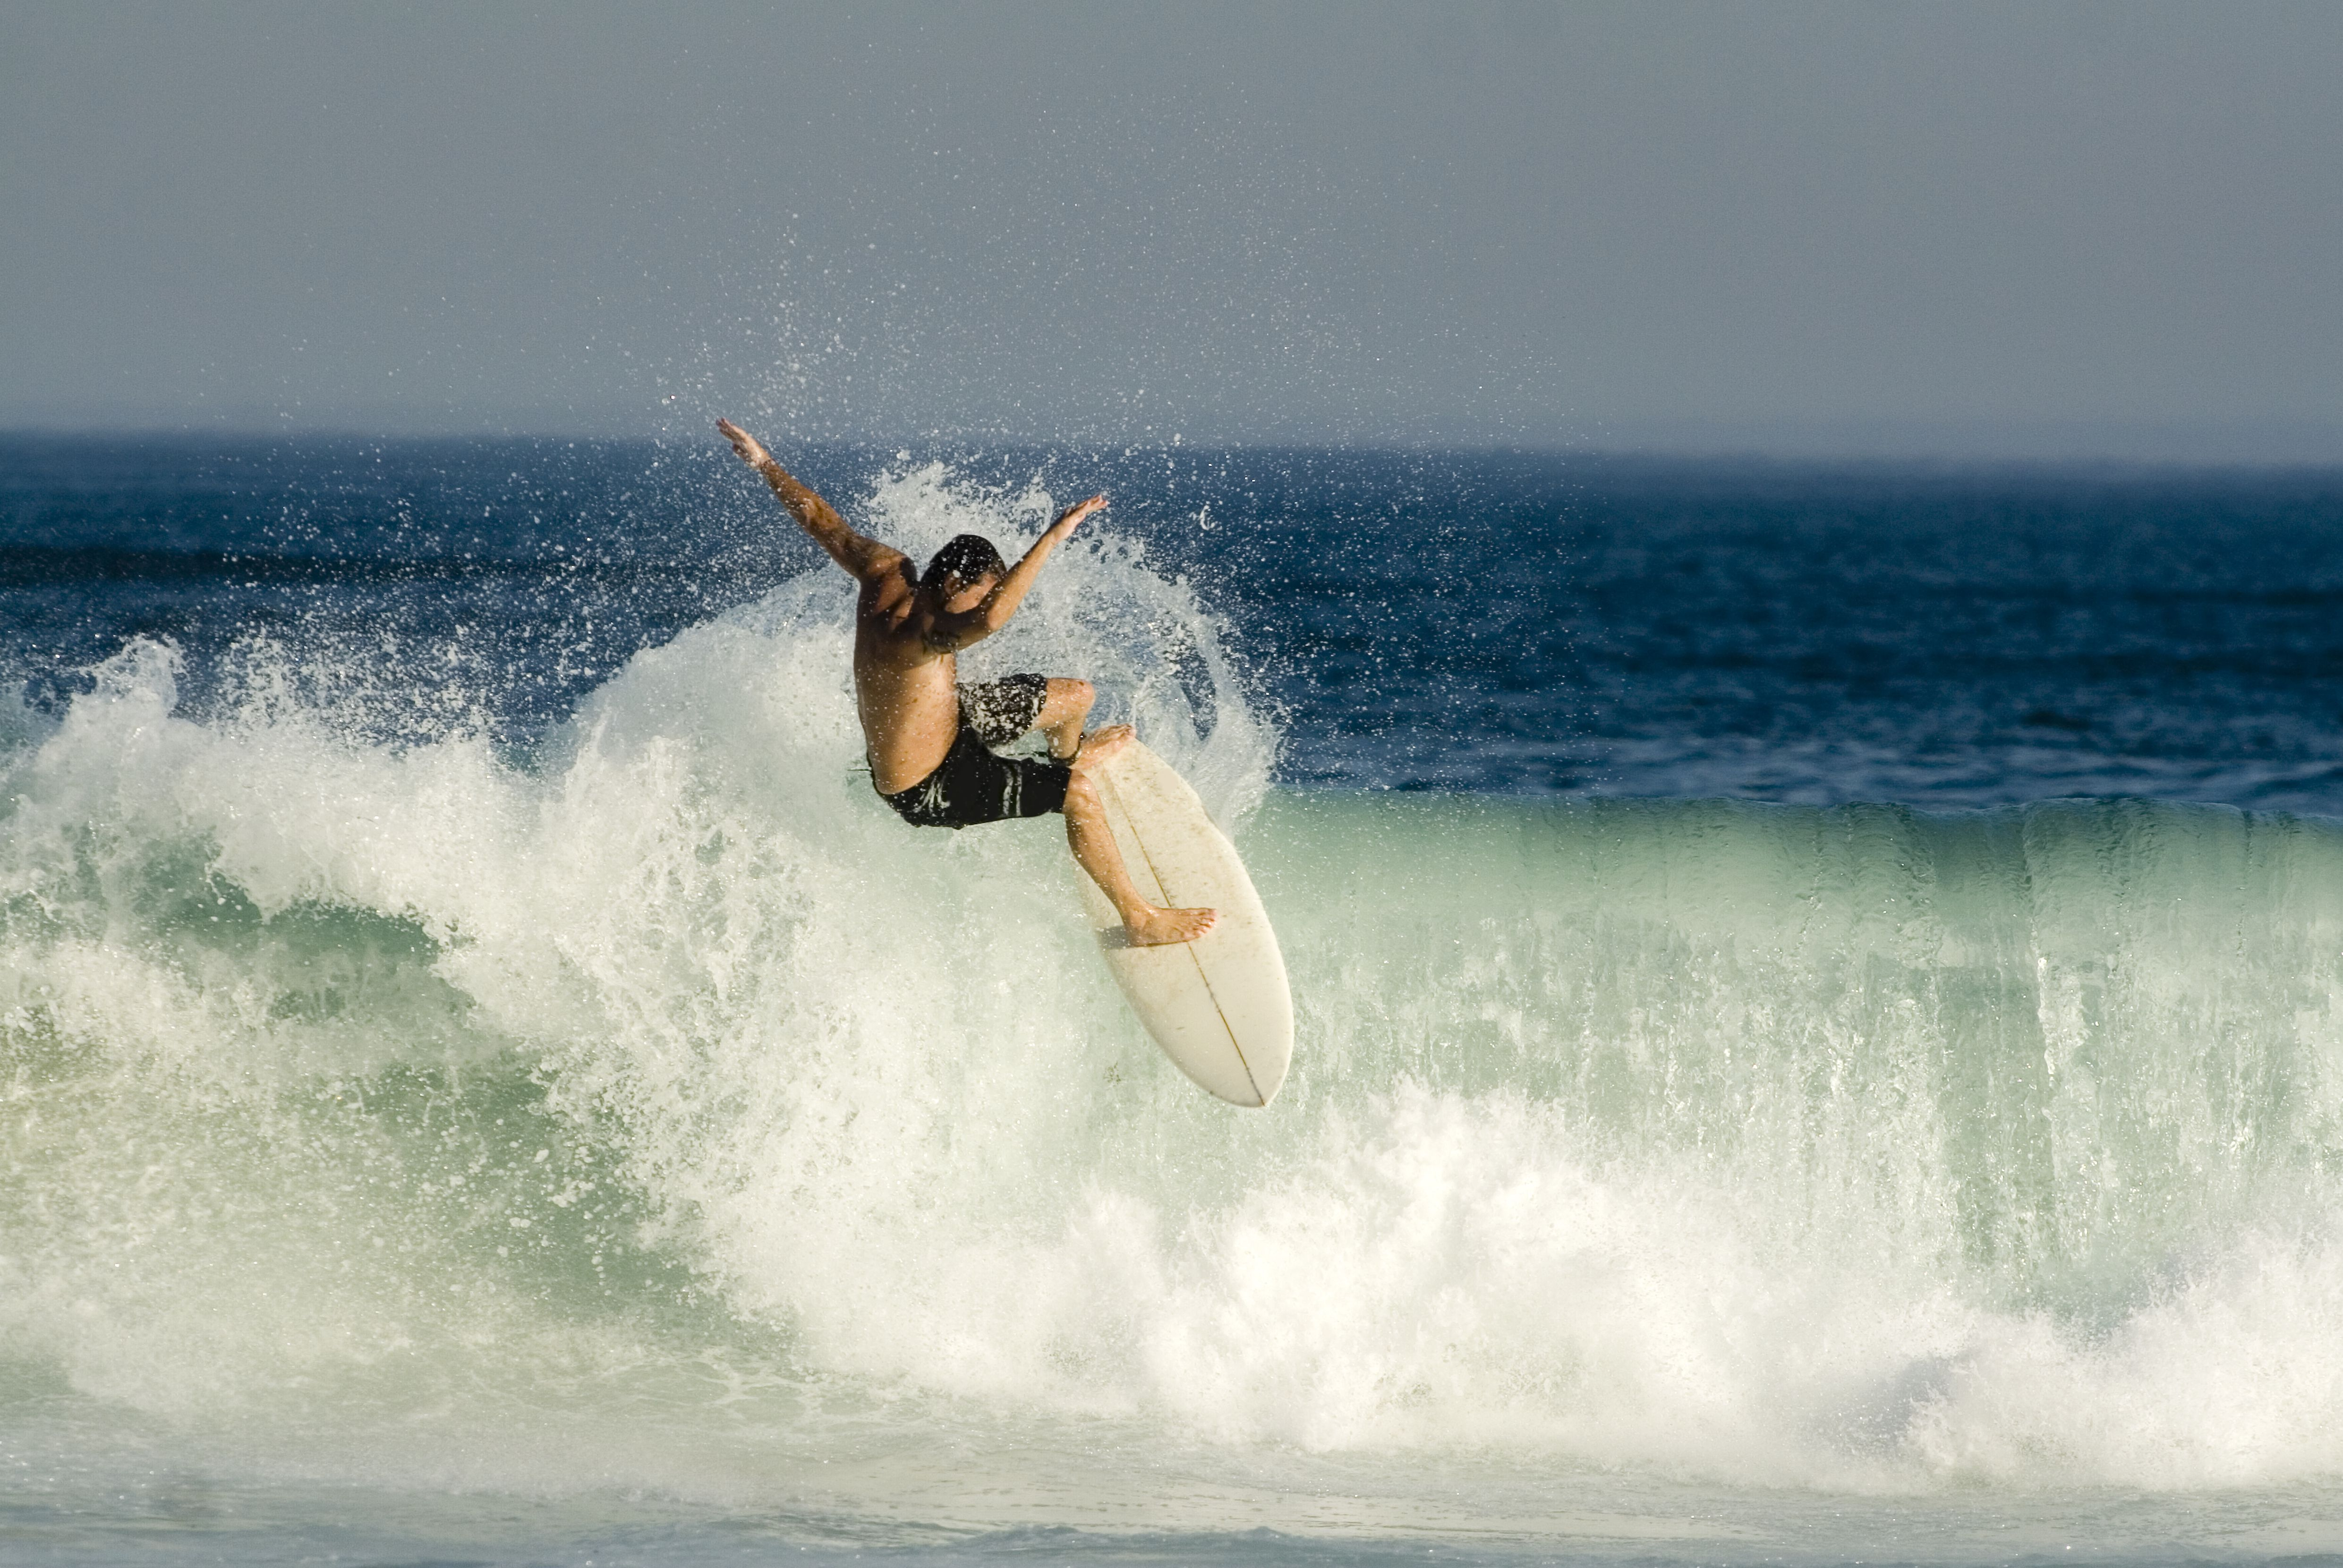 Surfer performing a stunt